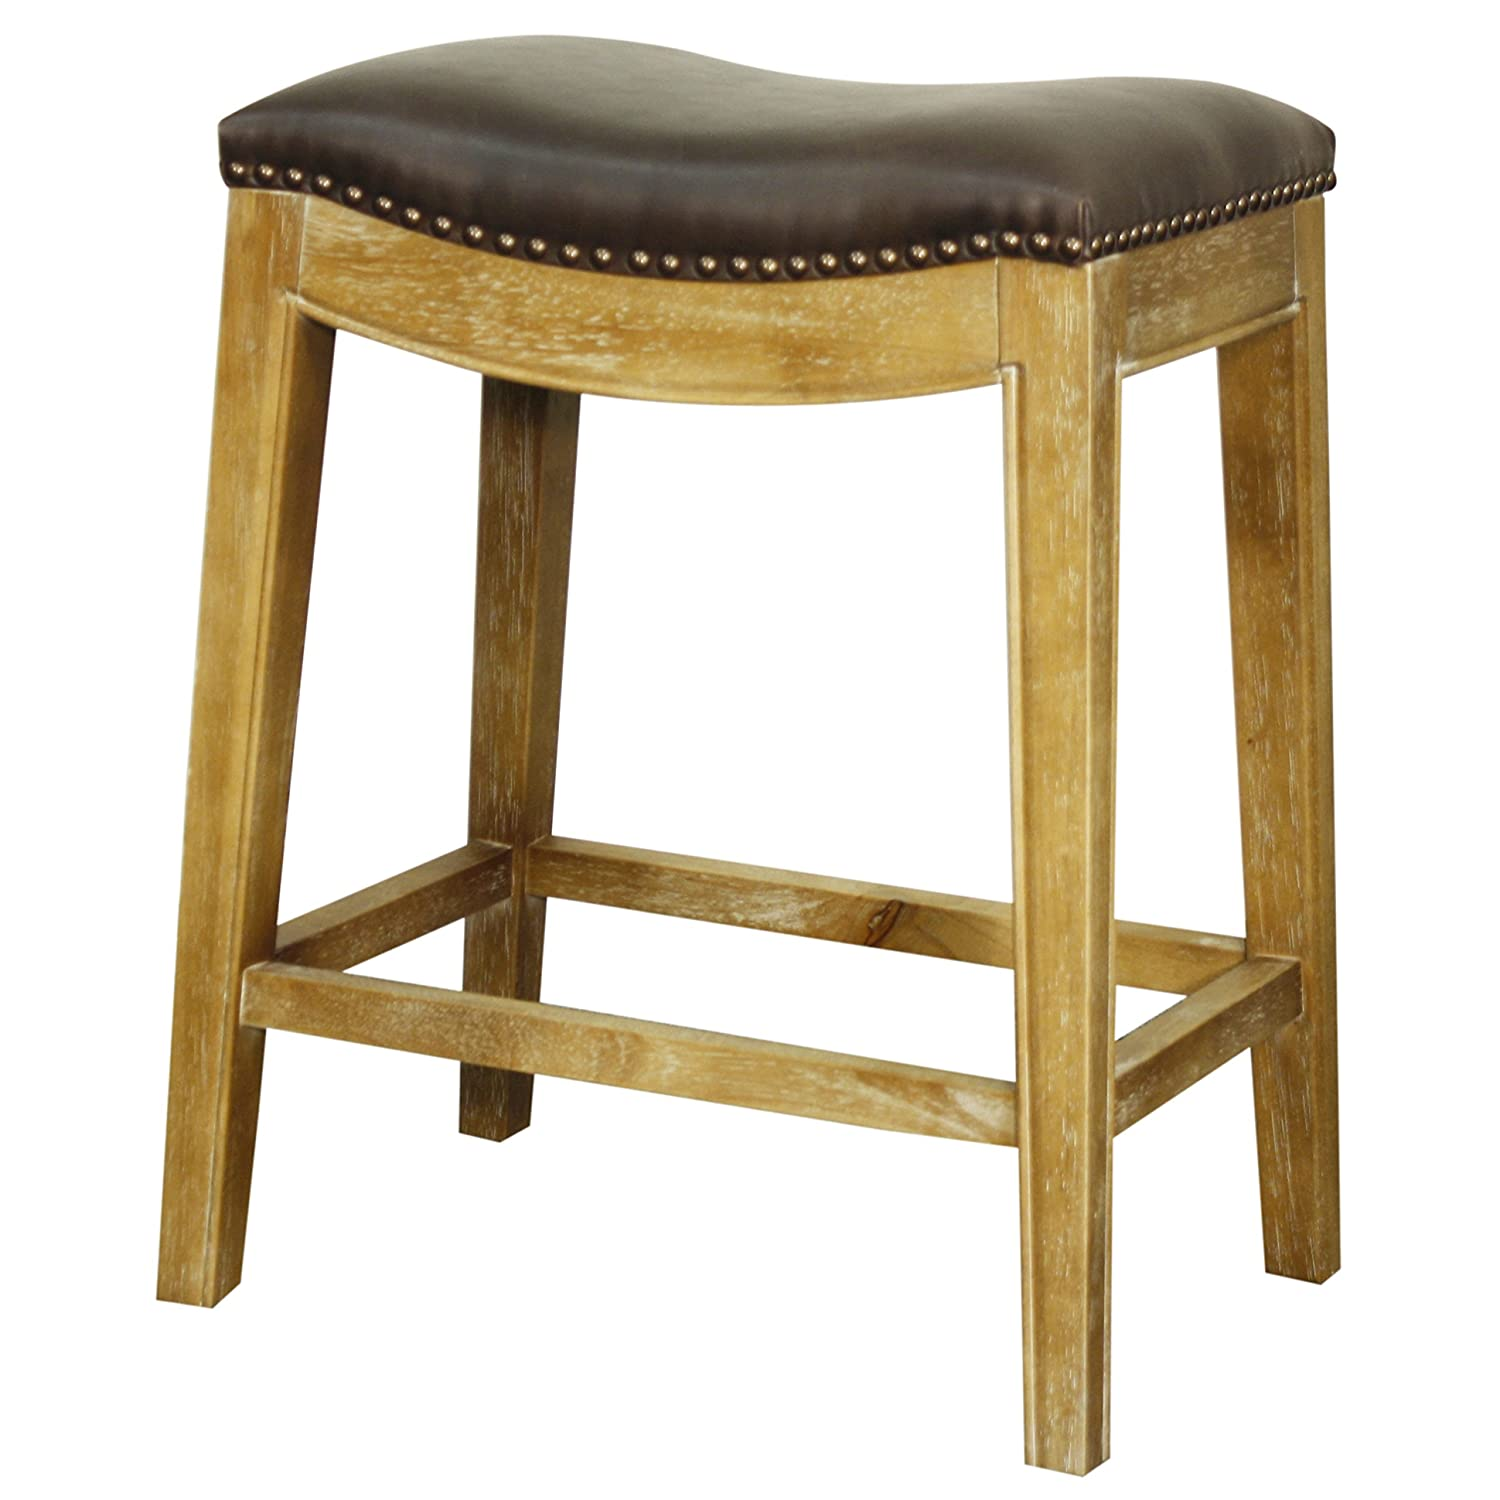 Fabulous New Pacific Direct Elmo Bonded Leather Counter Stool Weathered Smoke Legs Vintage Dark Brown Fully Assembled Caraccident5 Cool Chair Designs And Ideas Caraccident5Info